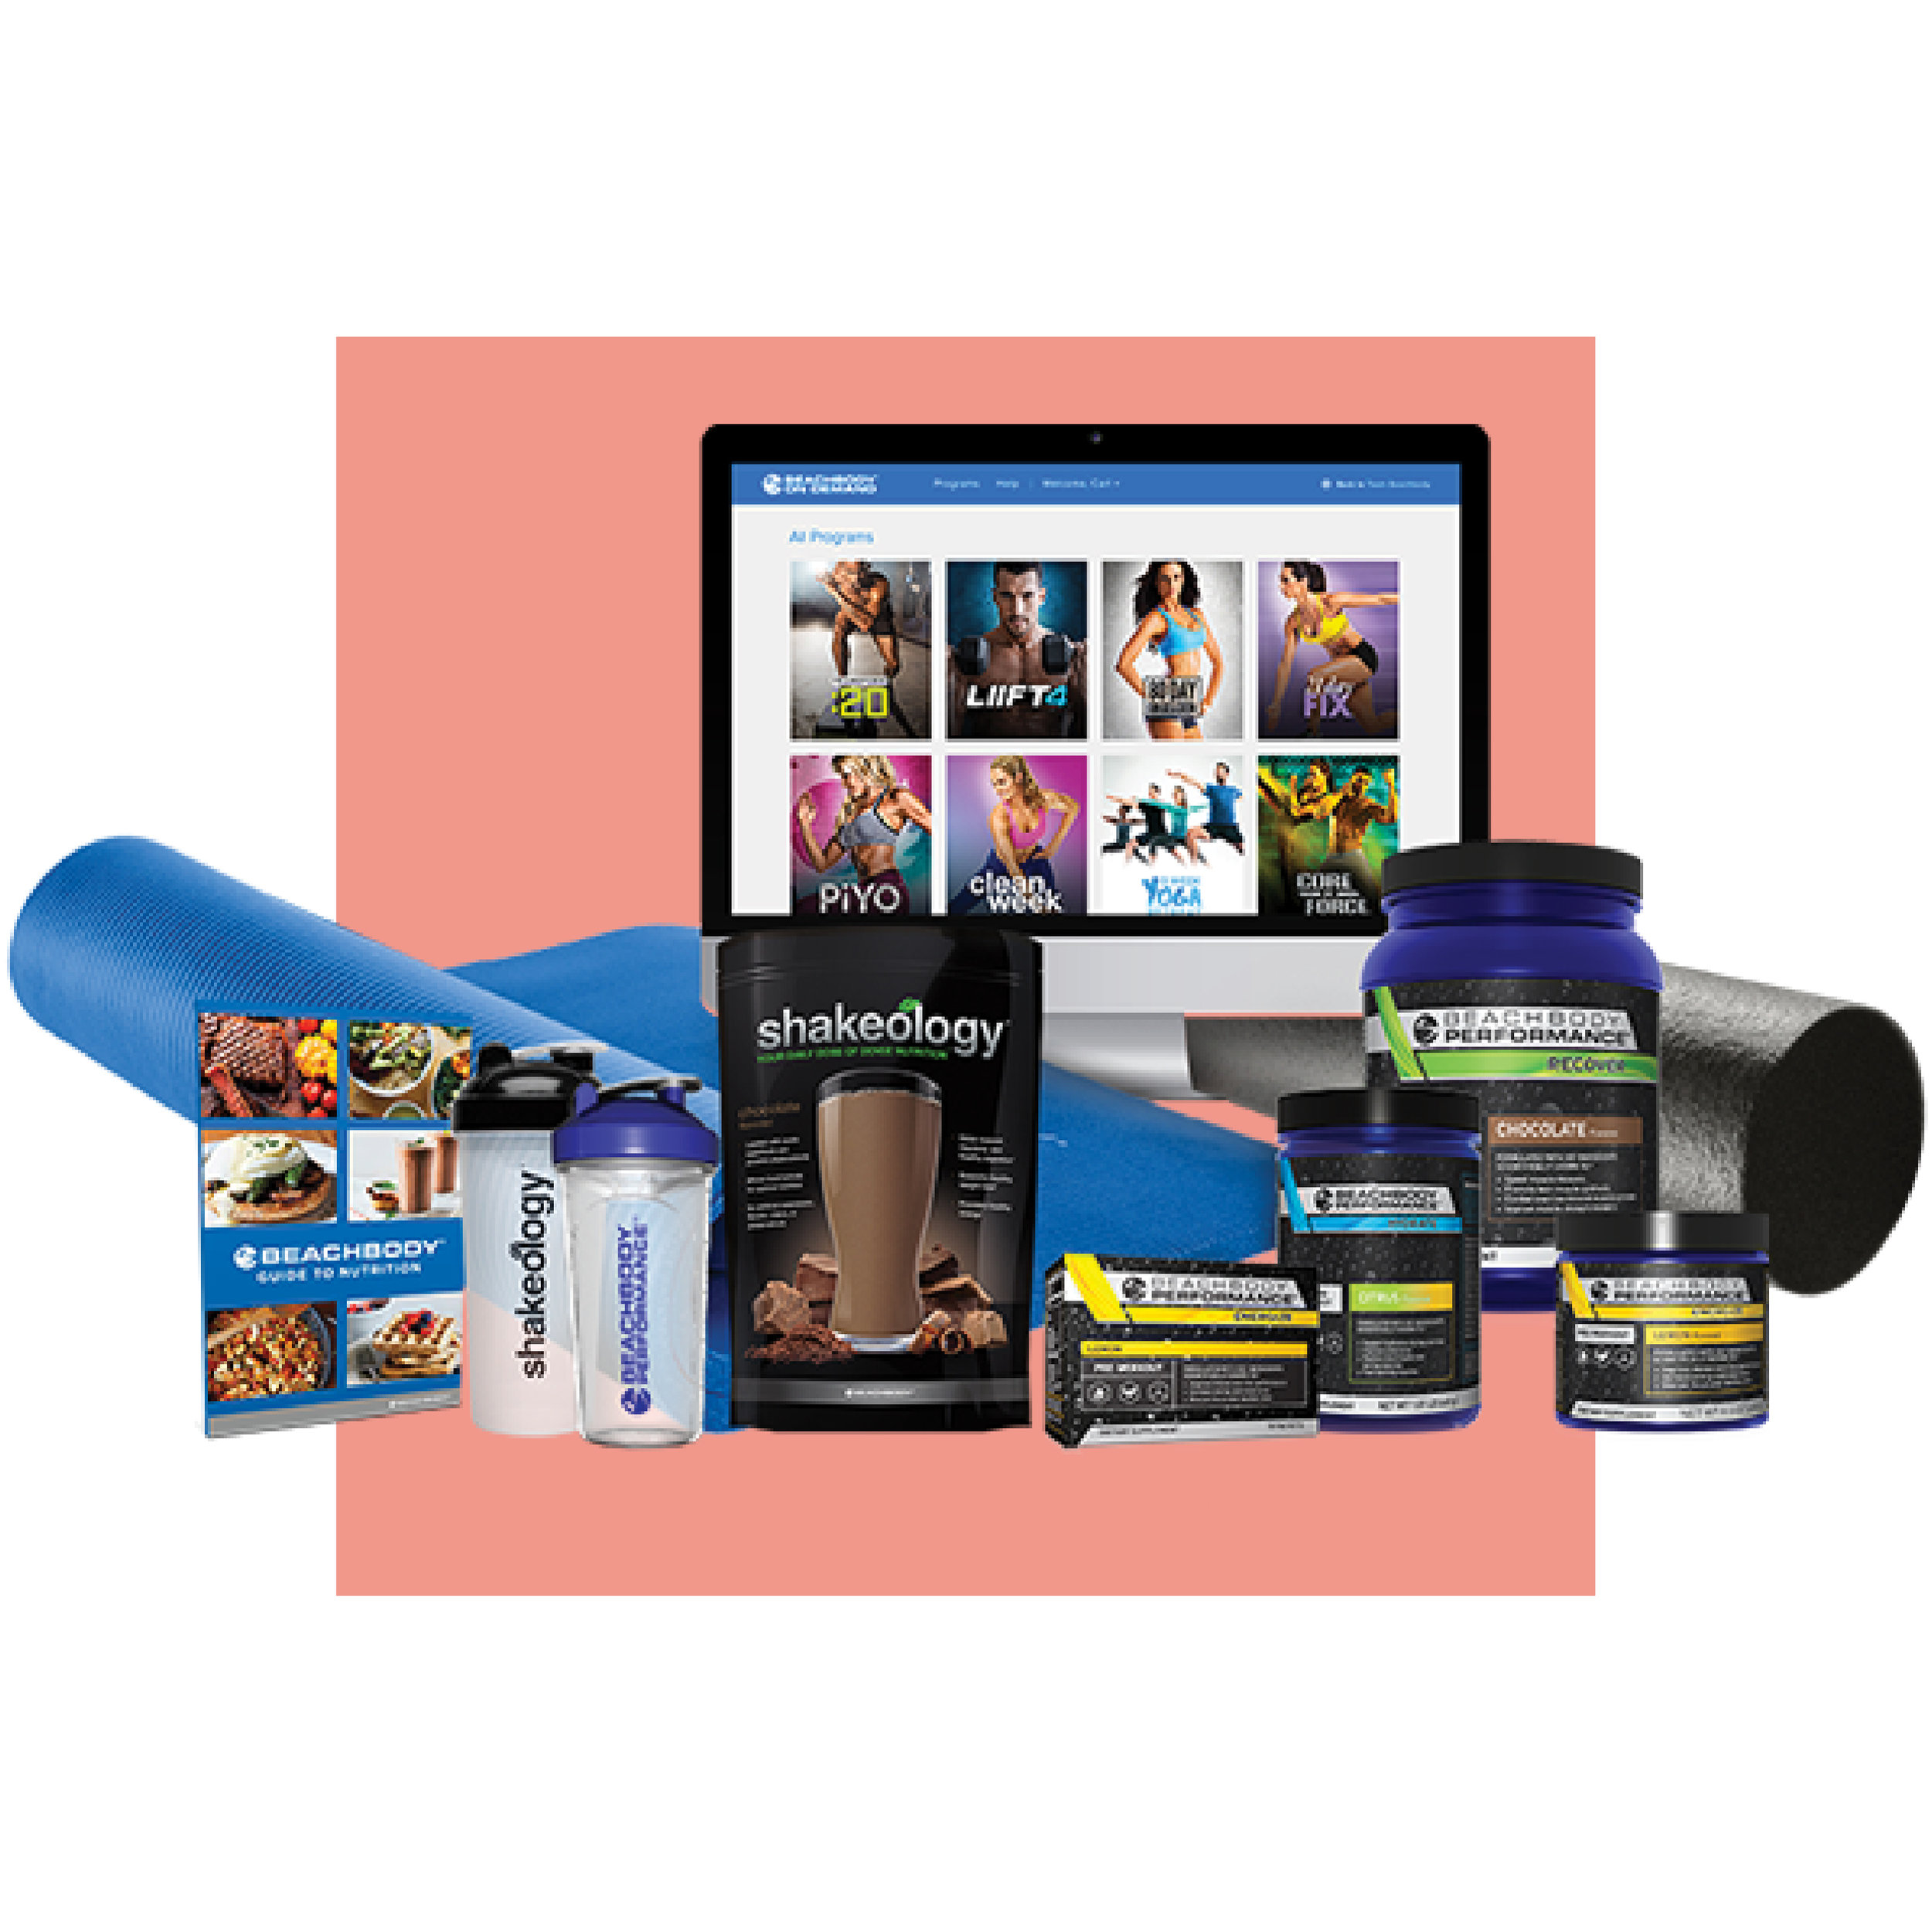 MEGA CHALLENGE PACK -$295 - One year access to Beachbody on Demand30-day supply of Shakeology1 tub of Energize (all natural pre-workout)1 tub of Recover (post-workout muscle recovery)1 tub of Hydrate (electolytes for during workouts)Nutrition/meal prep guide and recipesTwo shaker cupsOne-on-one coaching and accountability groupExercise mat and foam roller10 count of Energize packets*Plus a free box of protein bars from me!